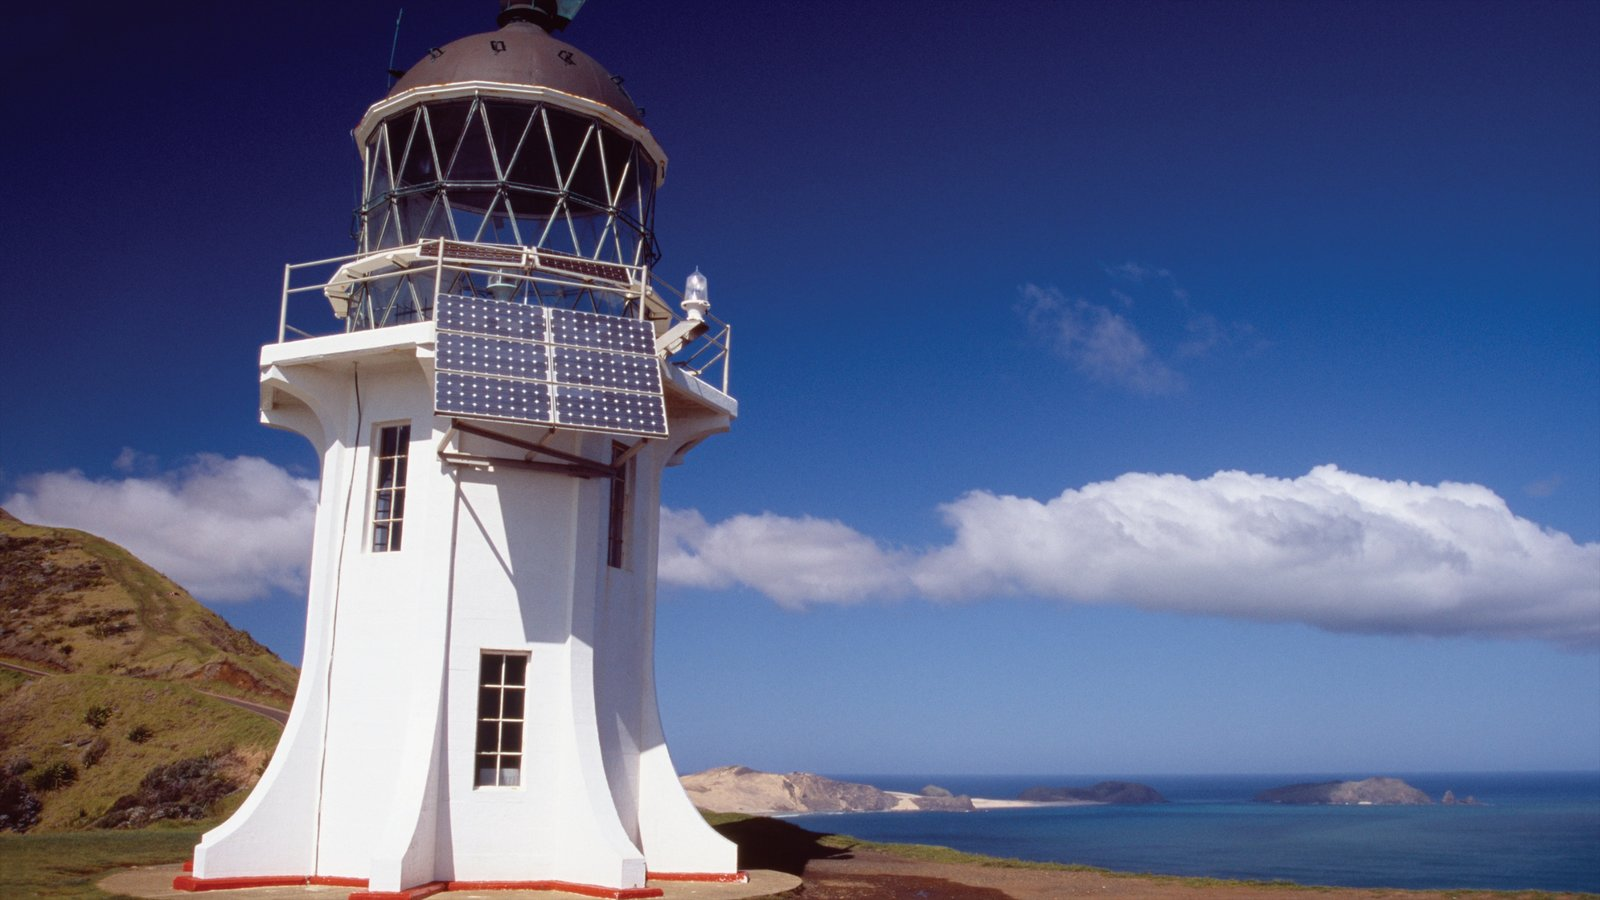 Cape Reinga Lighthouse featuring heritage architecture, general coastal views and a lighthouse